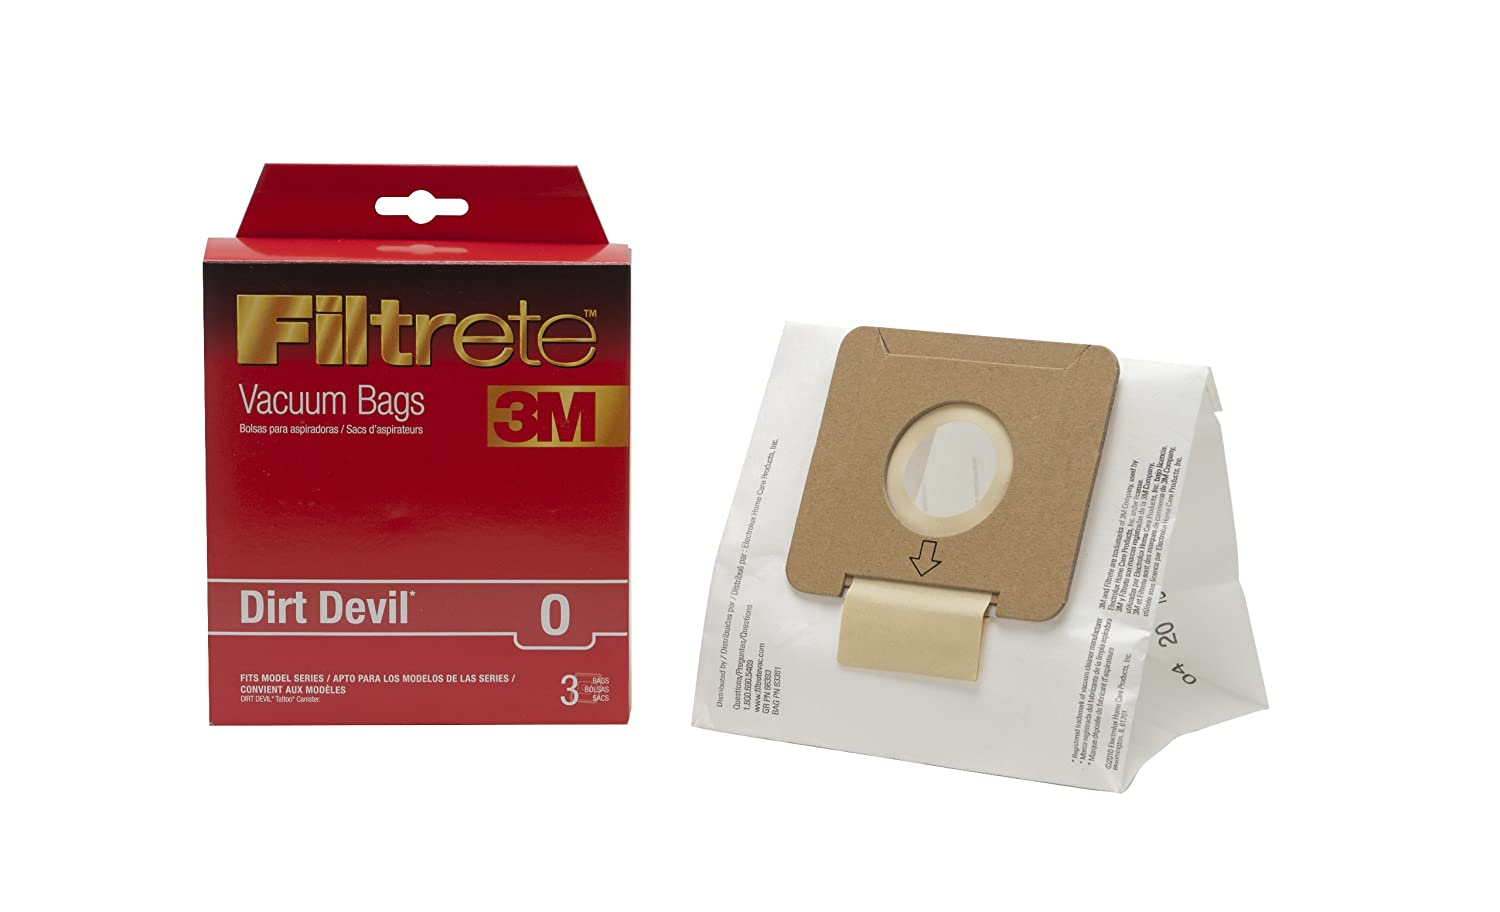 3M Filtrete Dirt Devil O (Tattoo) Allergen Vacuum Bag, White